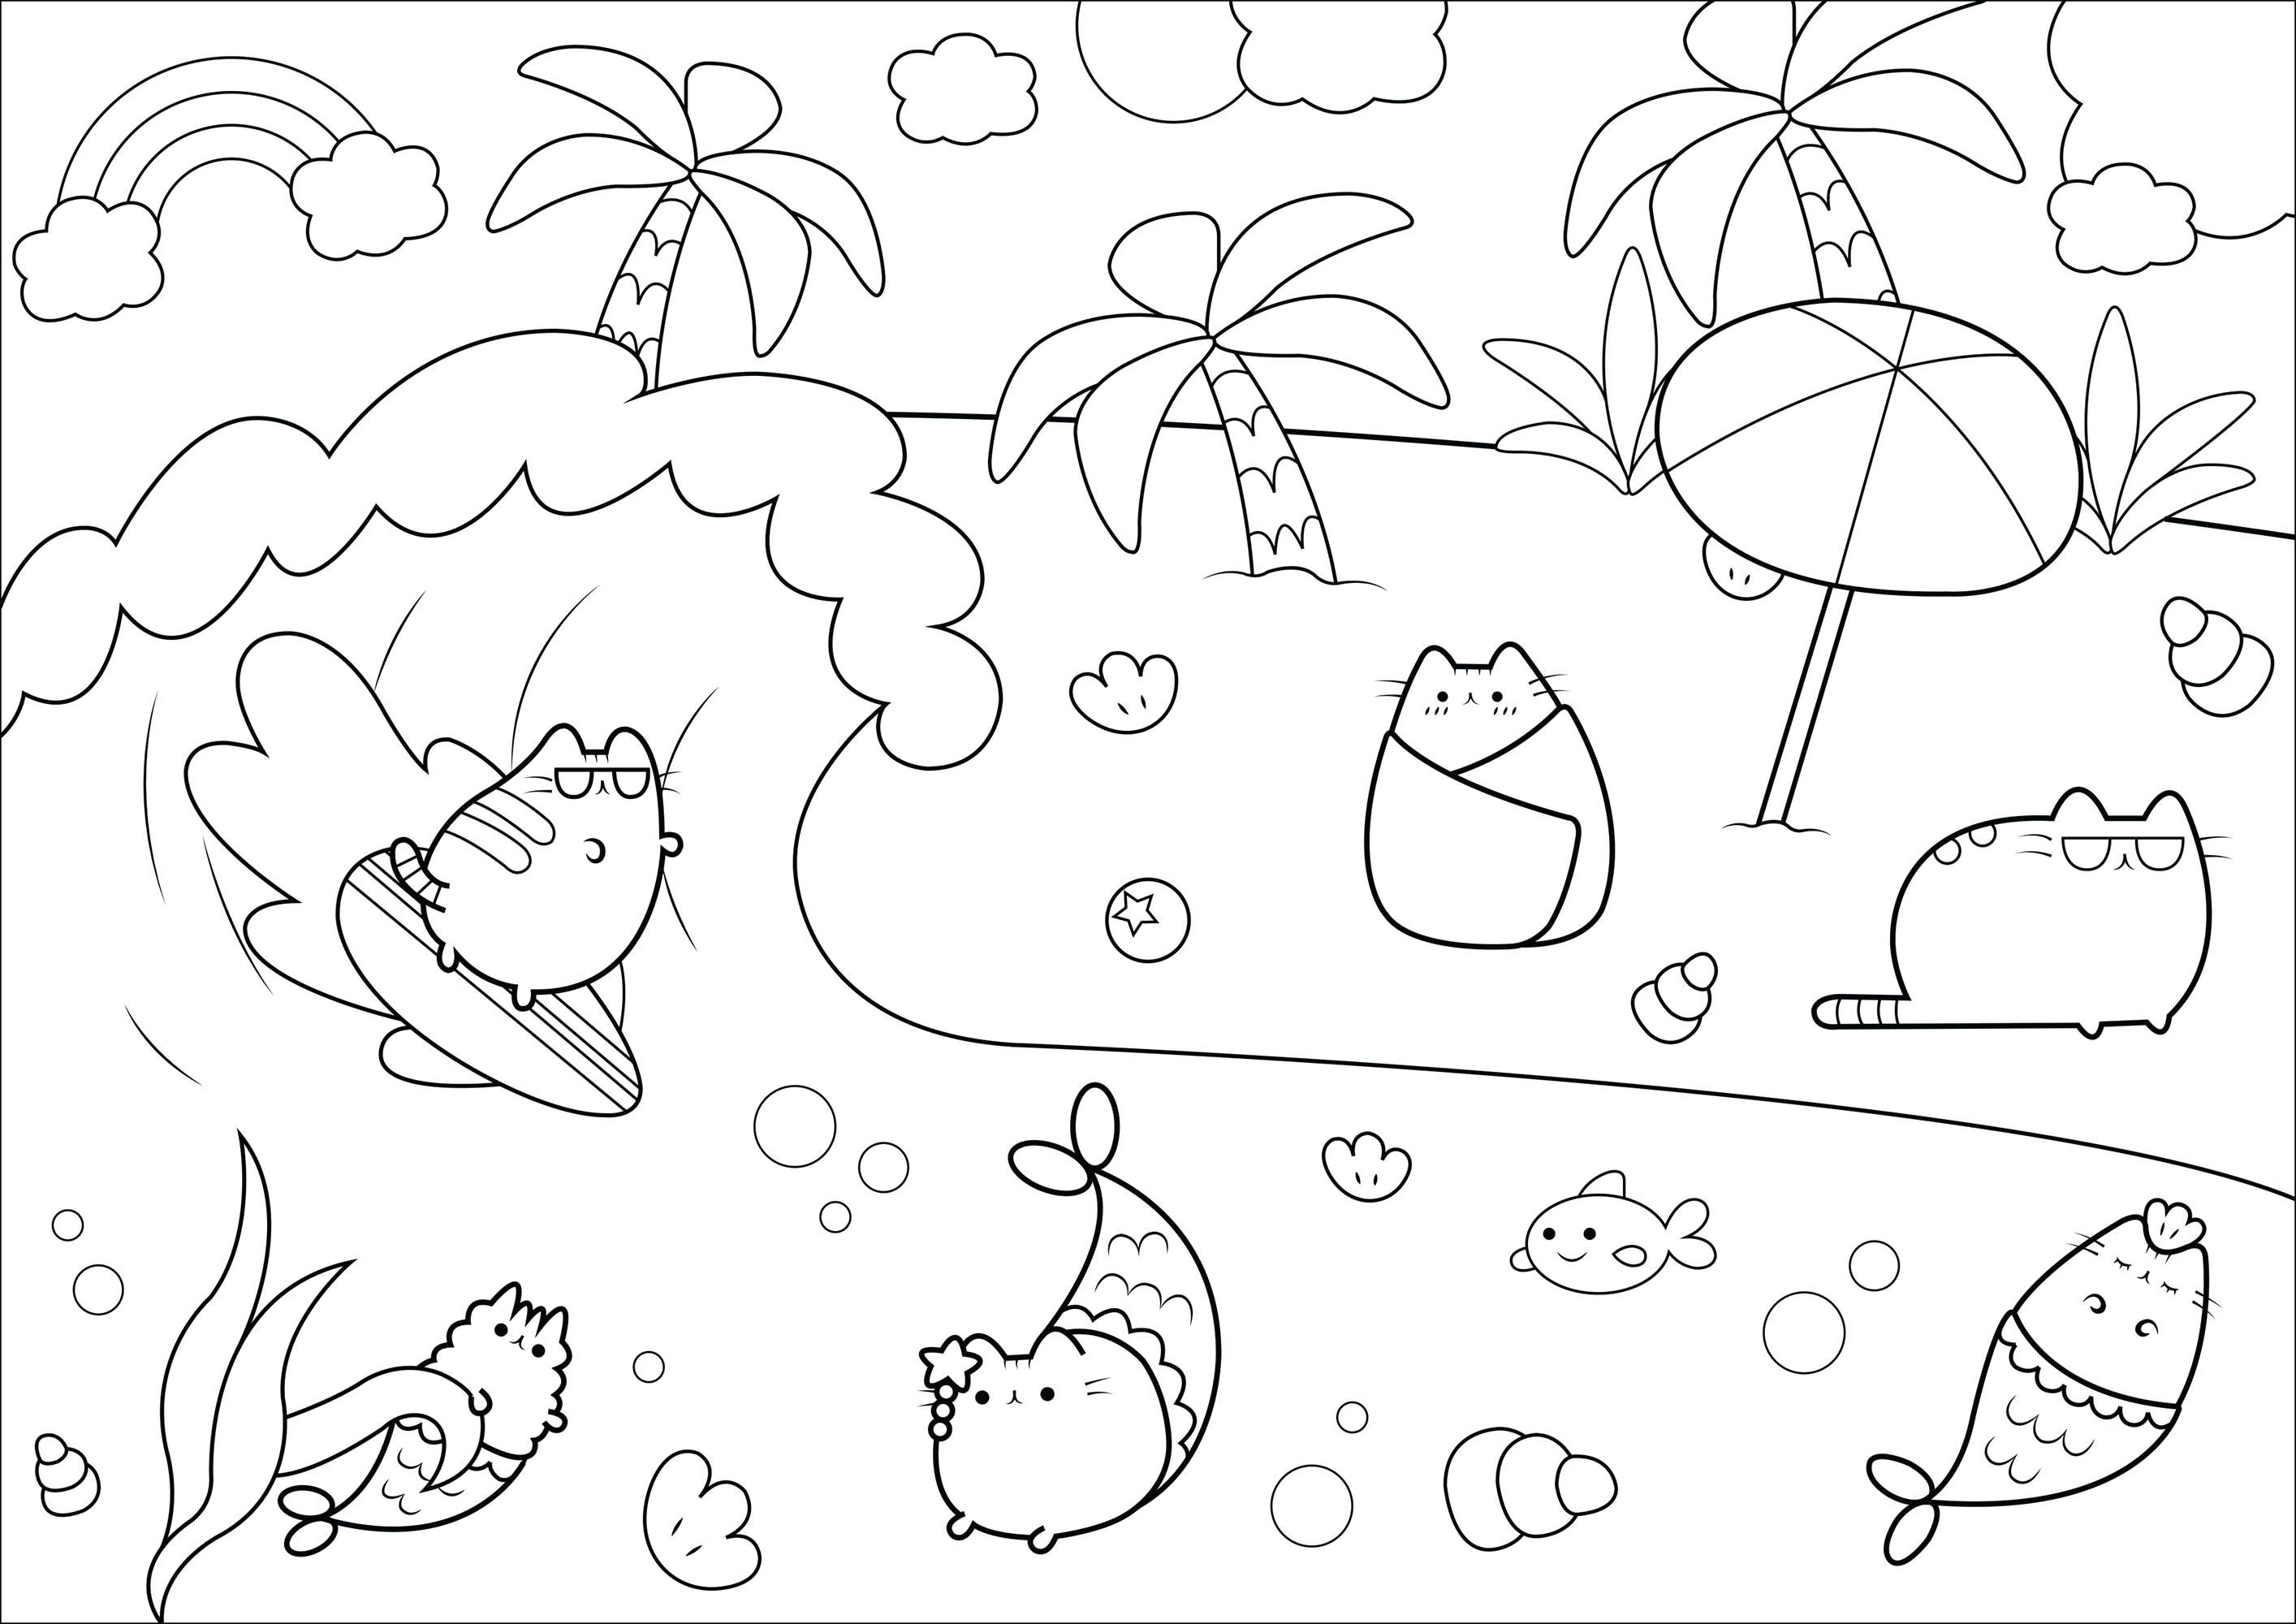 Pusheen Cats Enjoying A Beach Vacation Unicorn Coloring Pages Mermaid Coloring Pages Cat Coloring Page